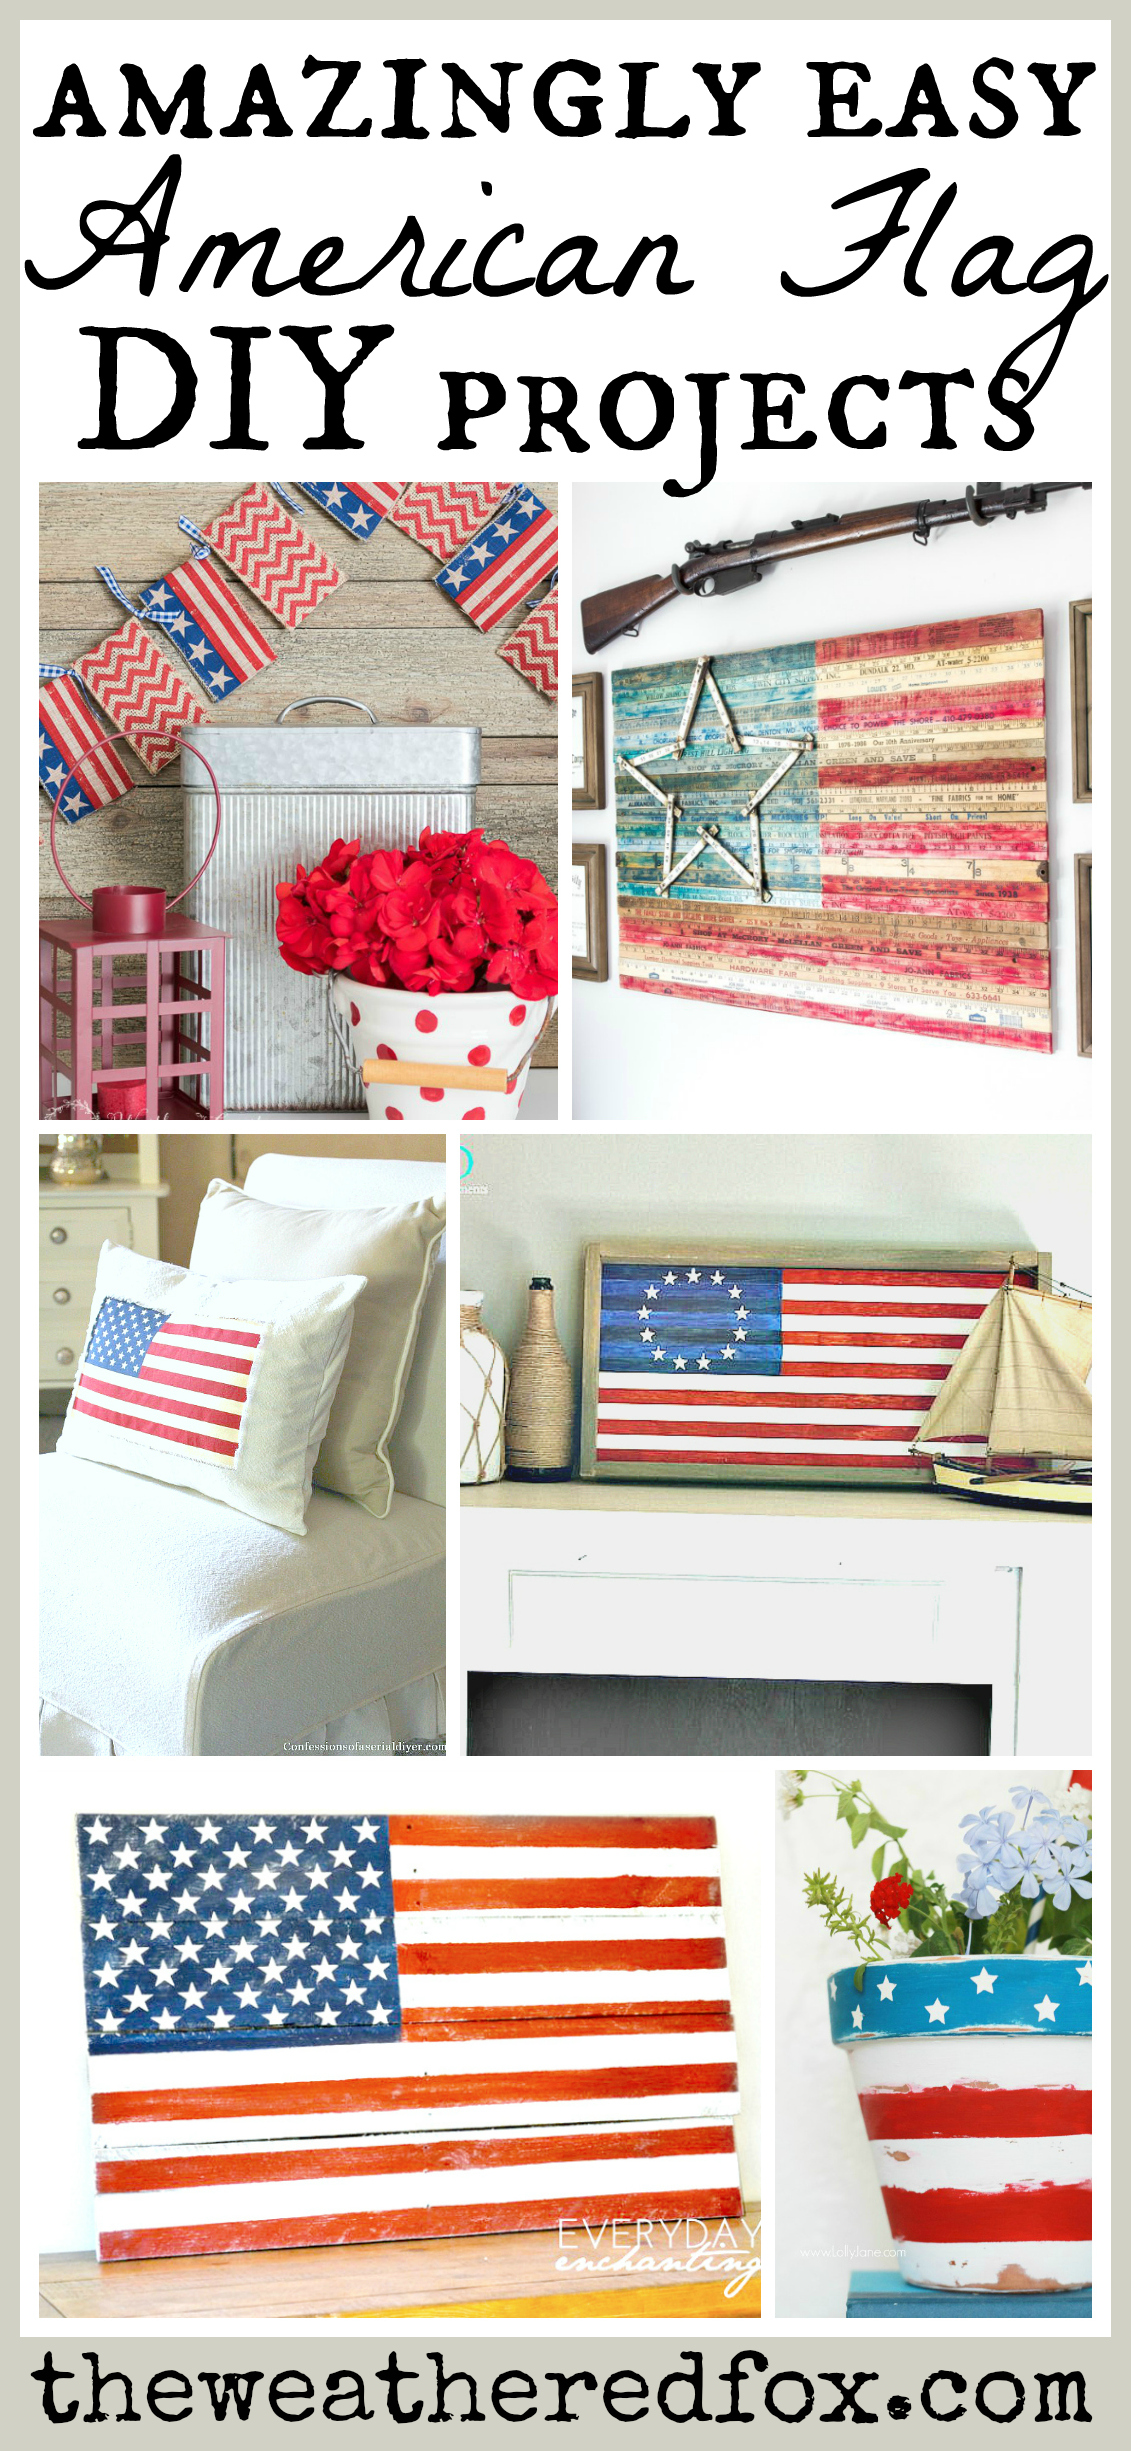 American flag decor ideas the weathered fox for American decoration ideas